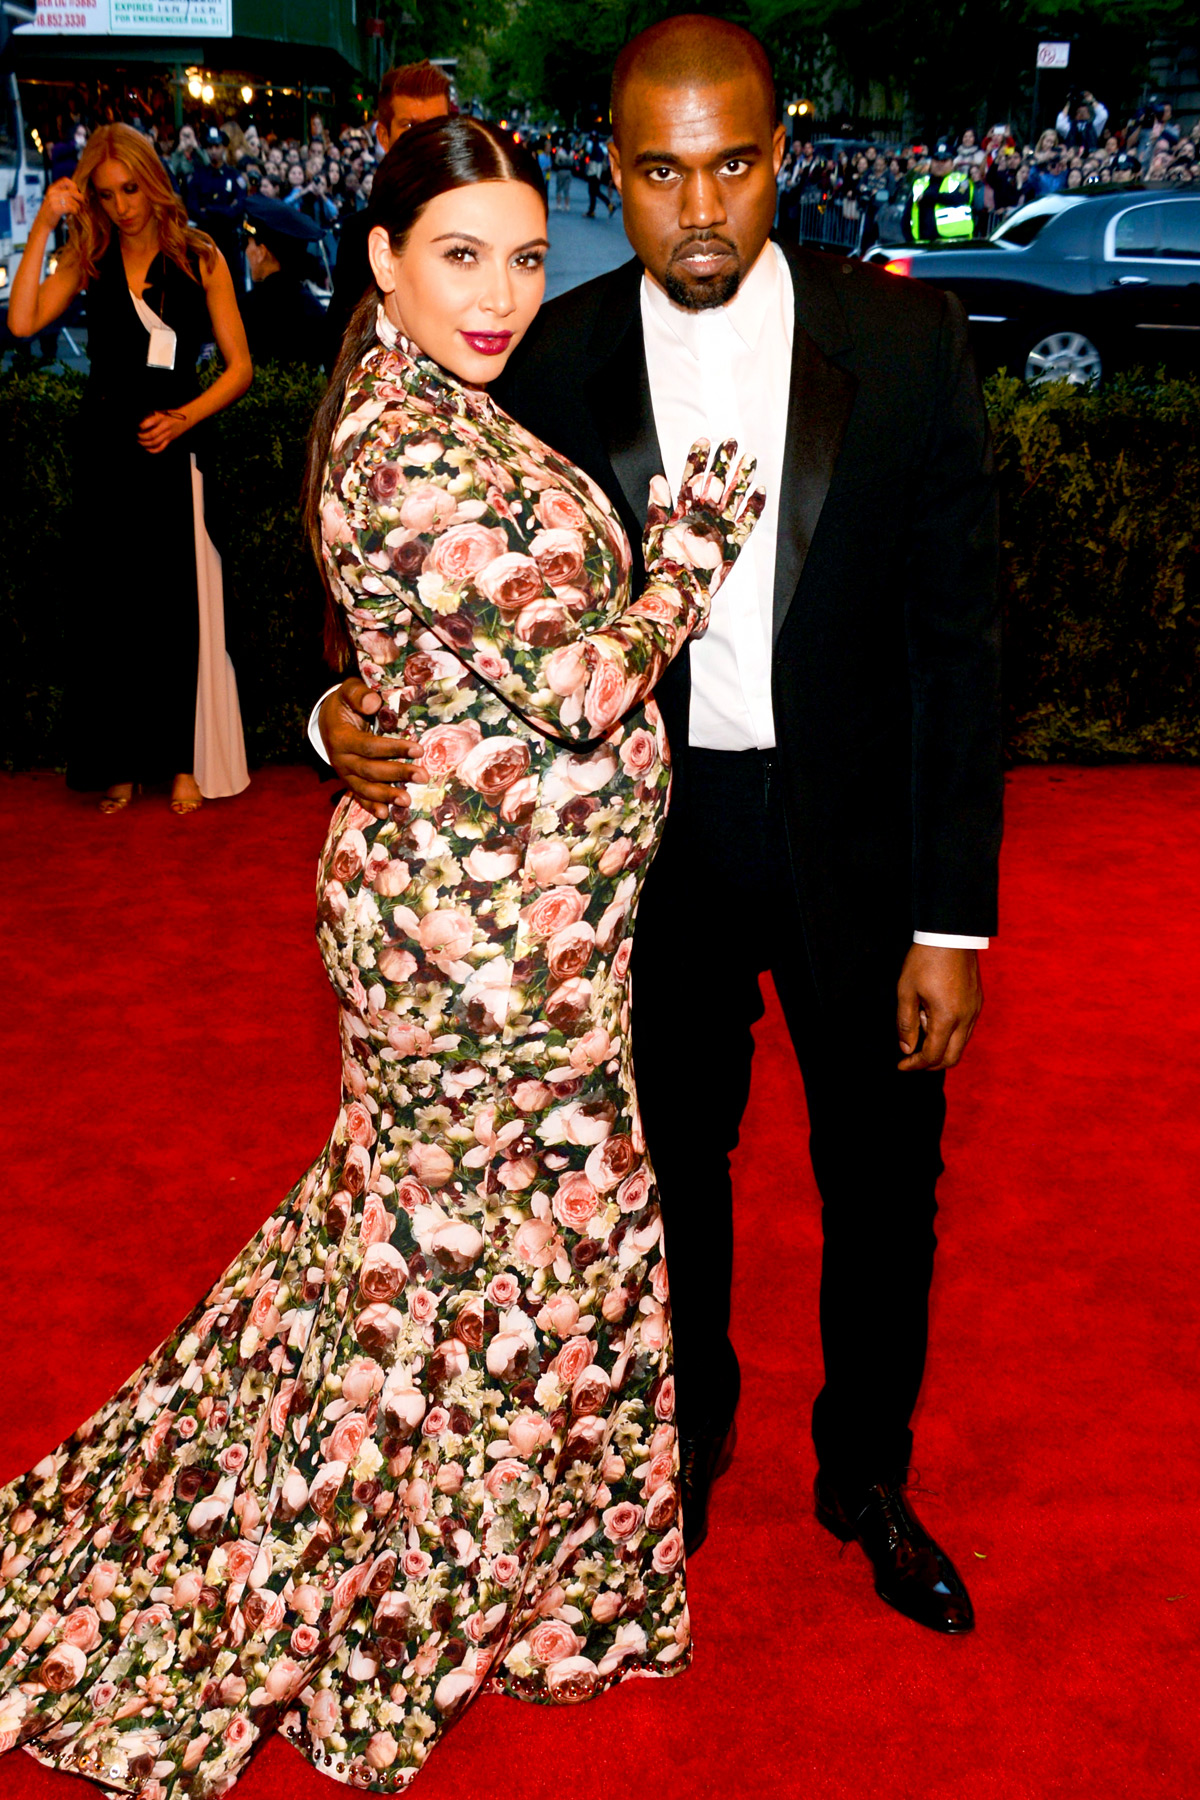 red-carpet-met-gala-2013-kim-kardashian-kanye-west